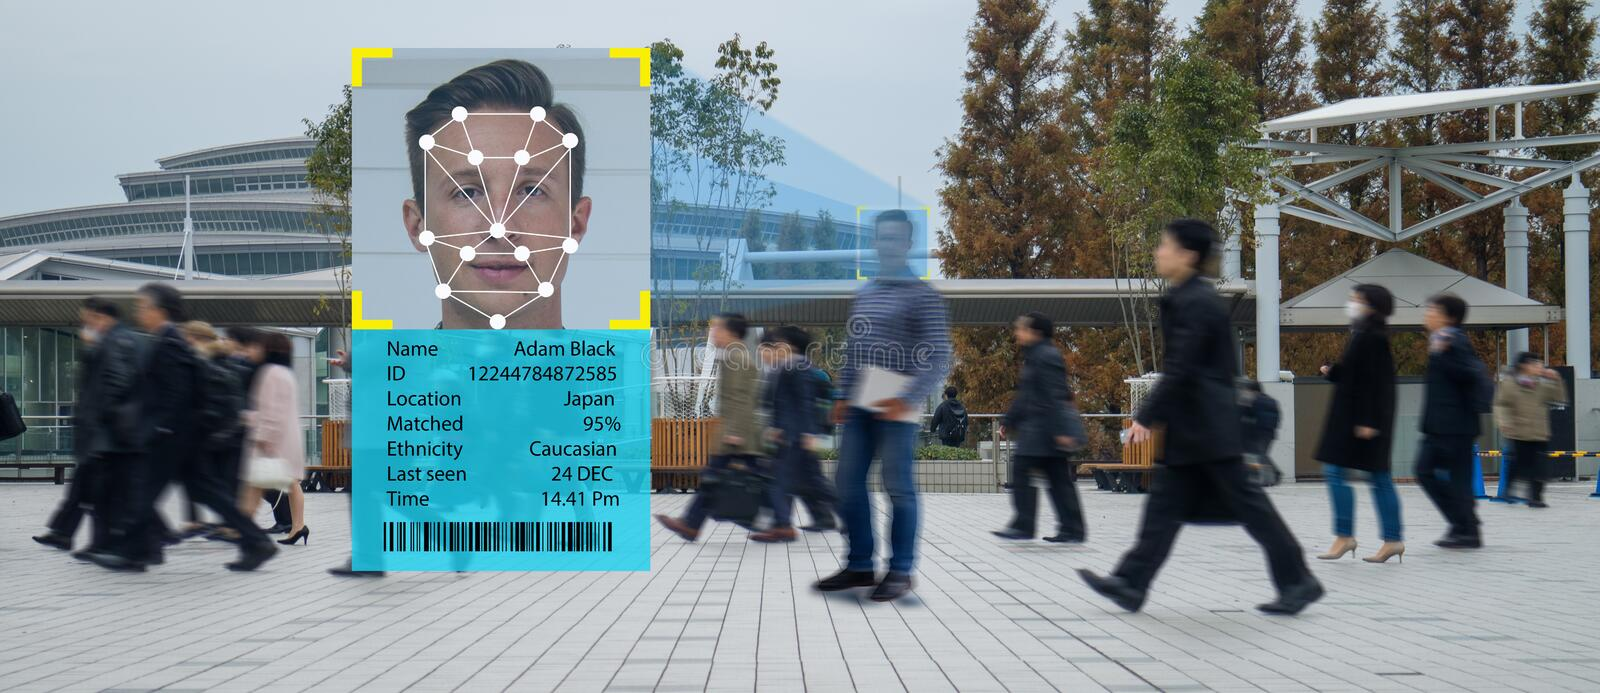 Iot machine learning with human and object recognition which use artificial intelligence to measurements ,analytic and identical c stock image